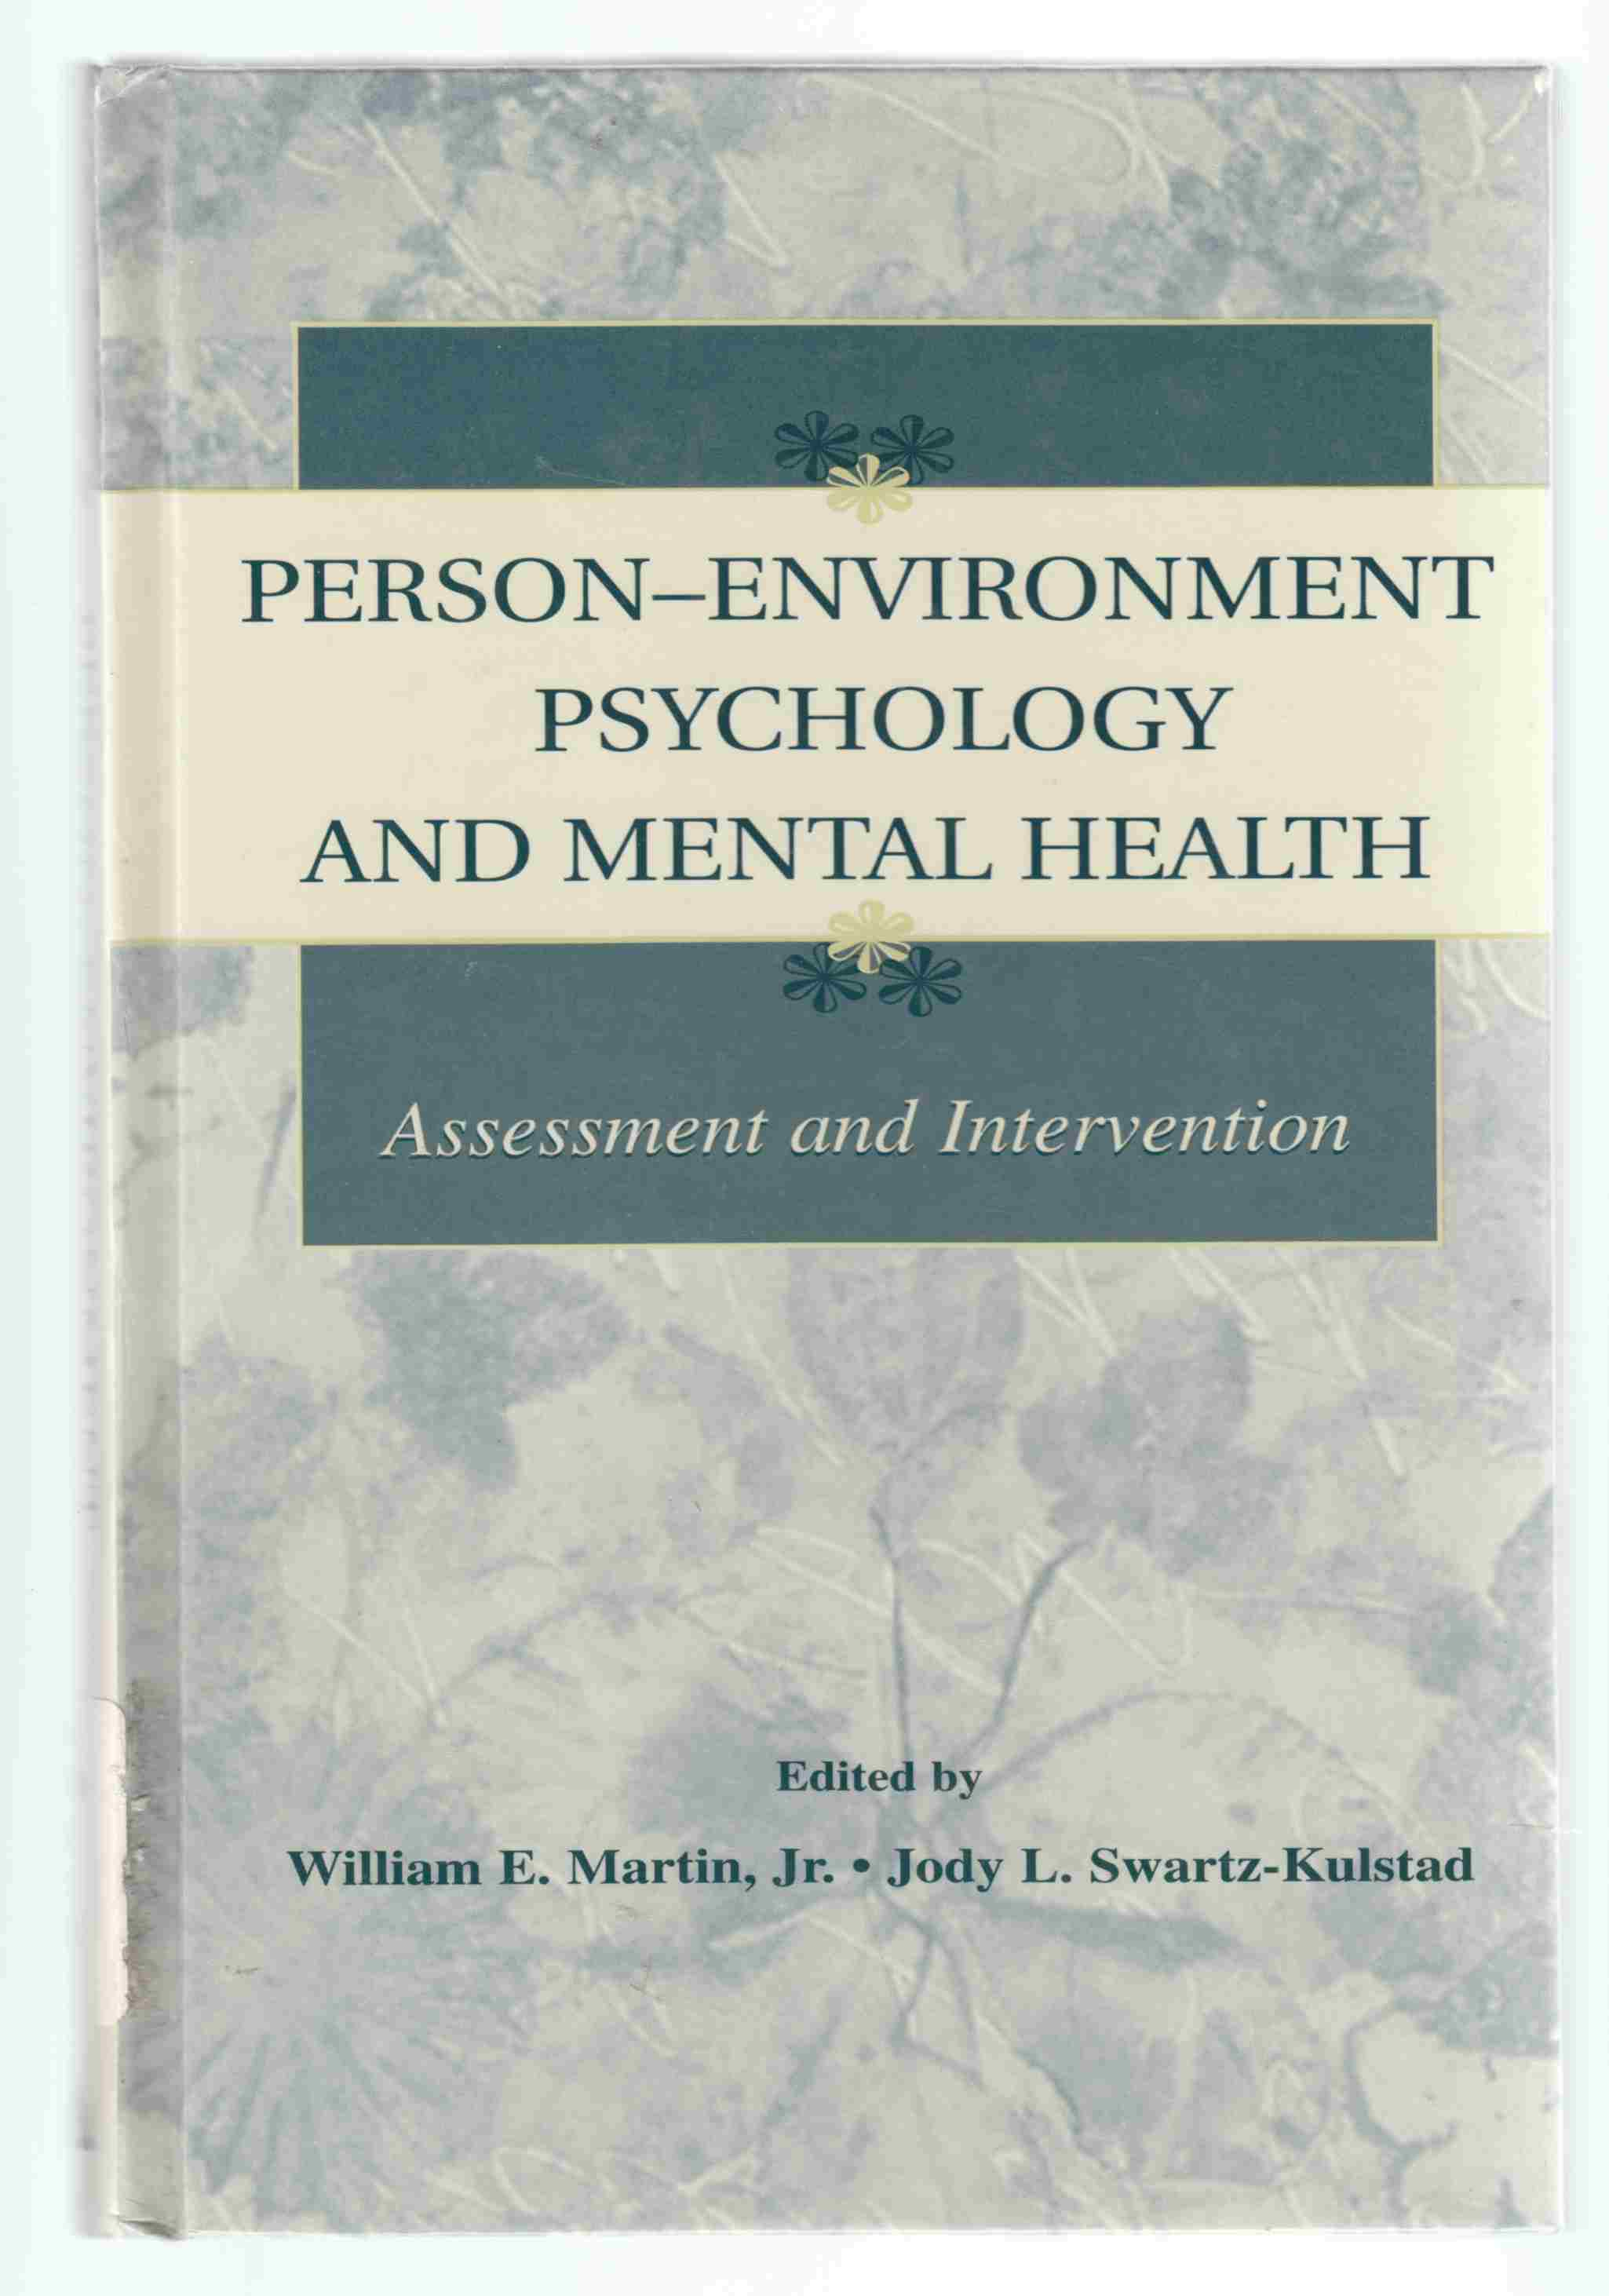 Image for Person-Environnment Psychology and Mental Health Assessment and Intervention